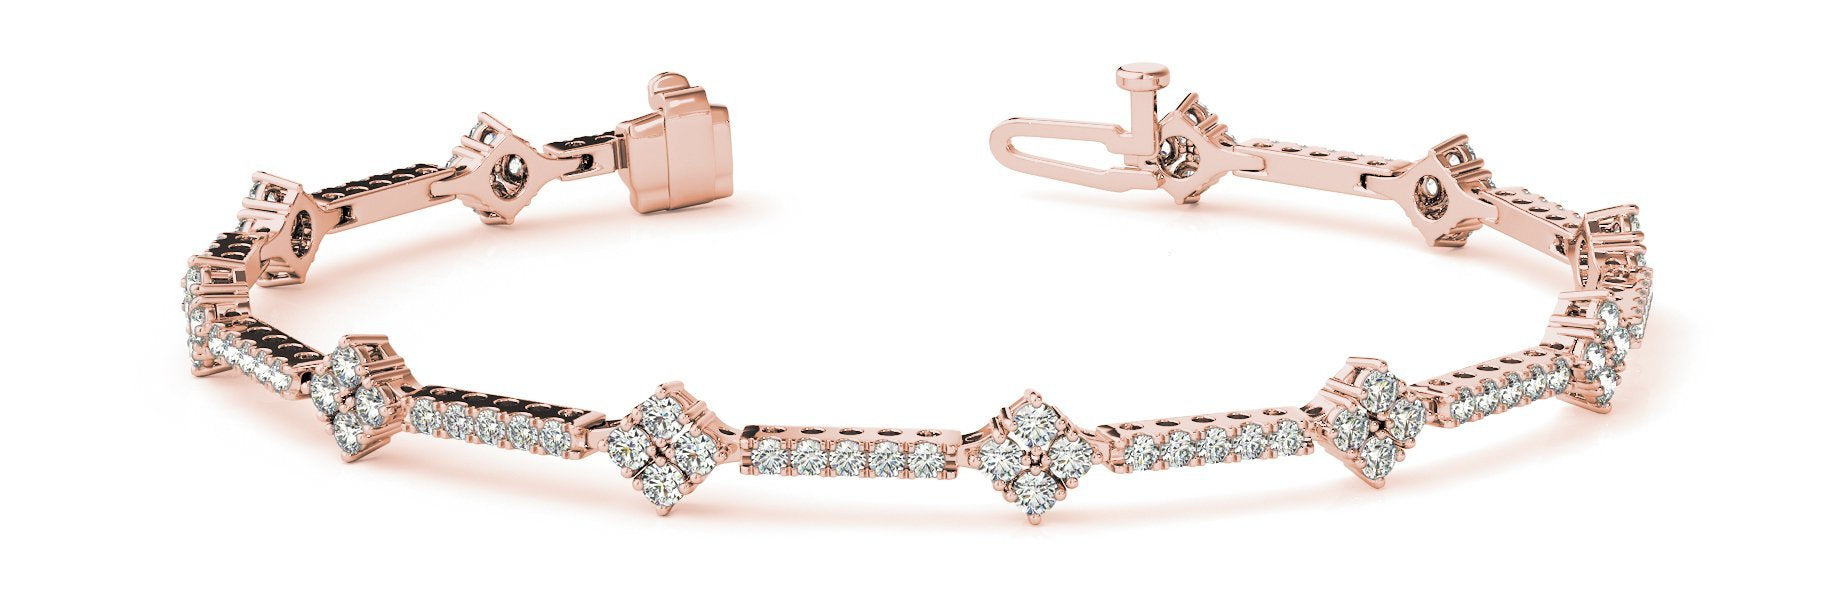 Fancy Diamond Bracelet Ladies 1.68ct tw - 14kt Rose Gold